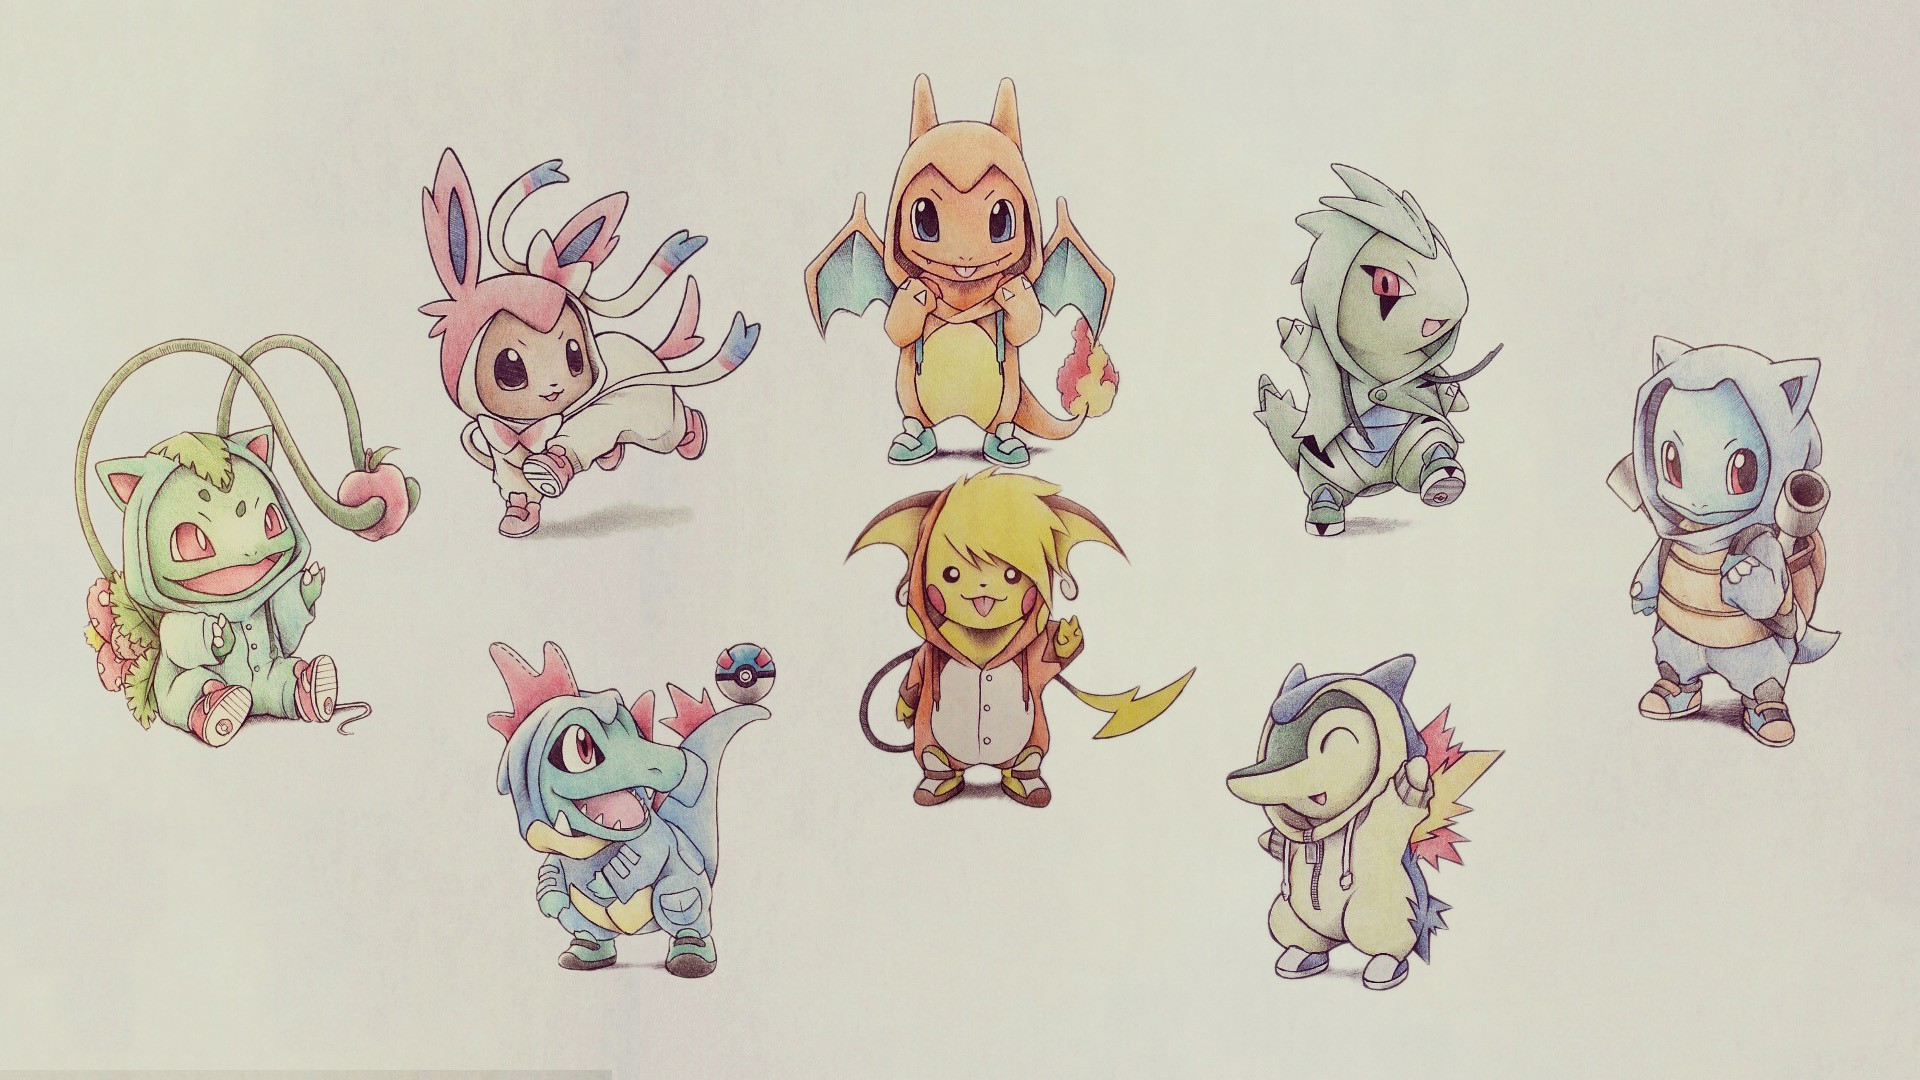 Wallpaper of basic Pokemon wearing costumes of their evolutions!